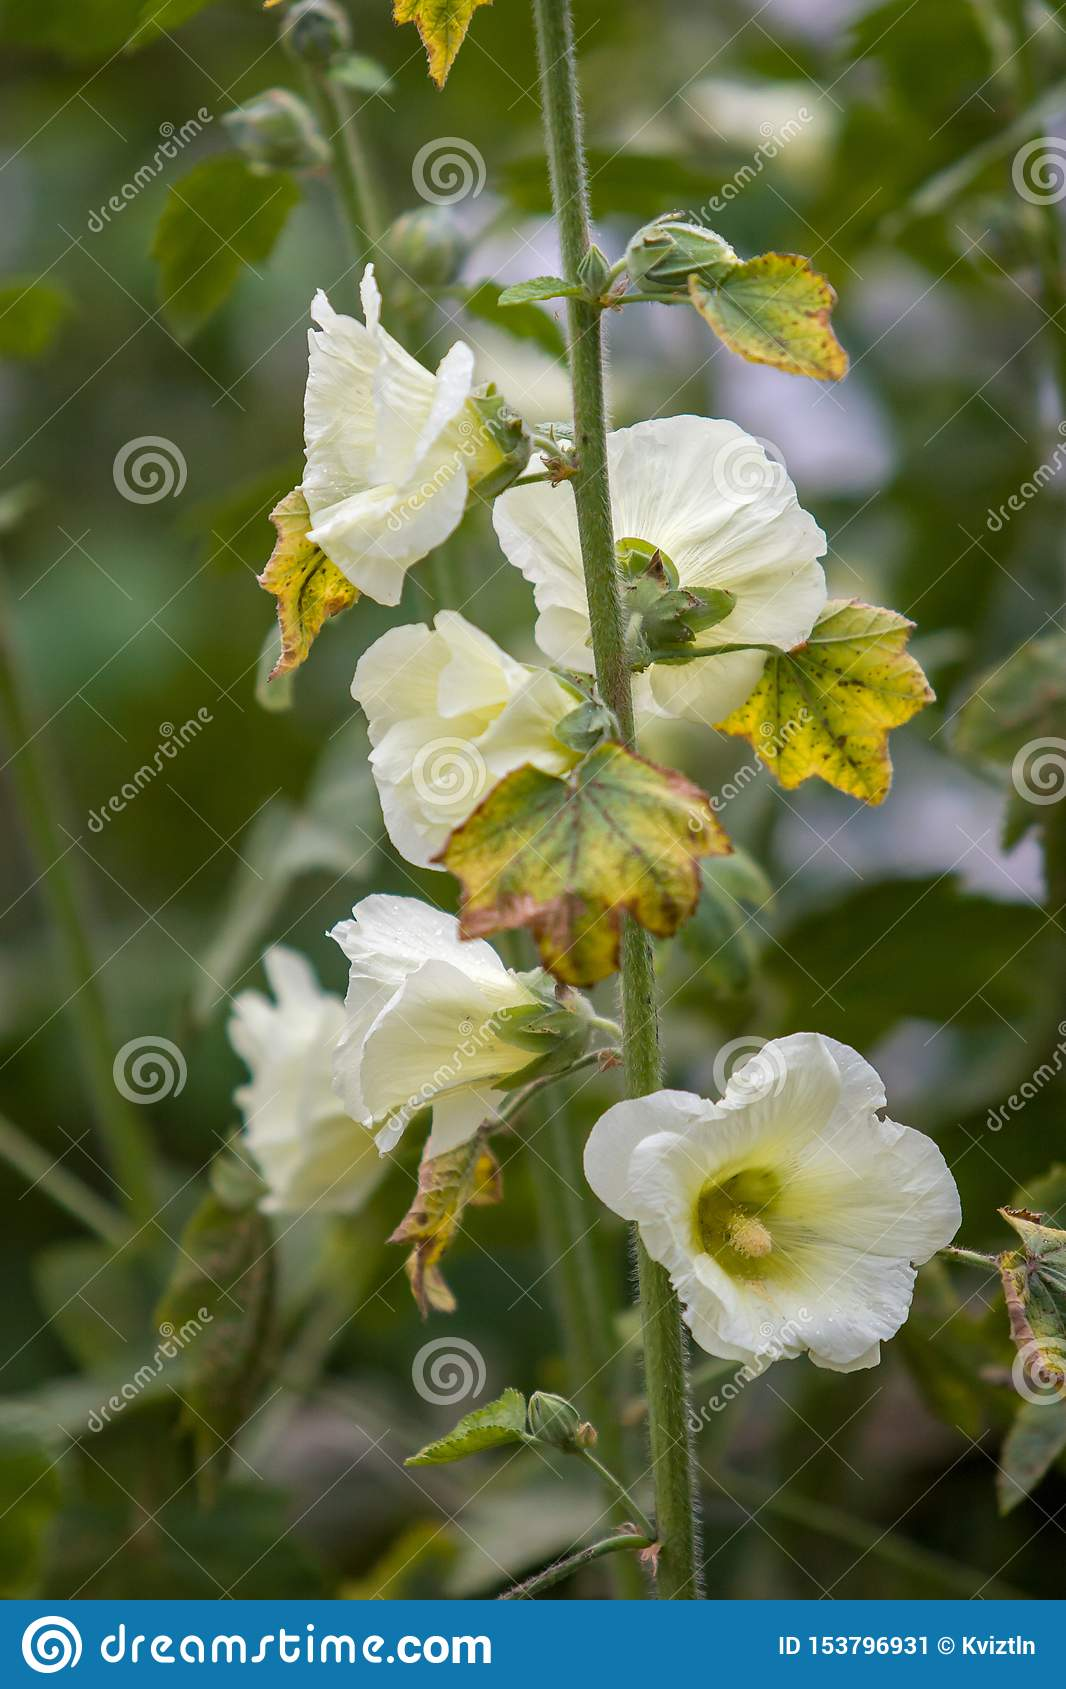 Many large white flowers like bells on one stem. Vertical frame. Selective focus.